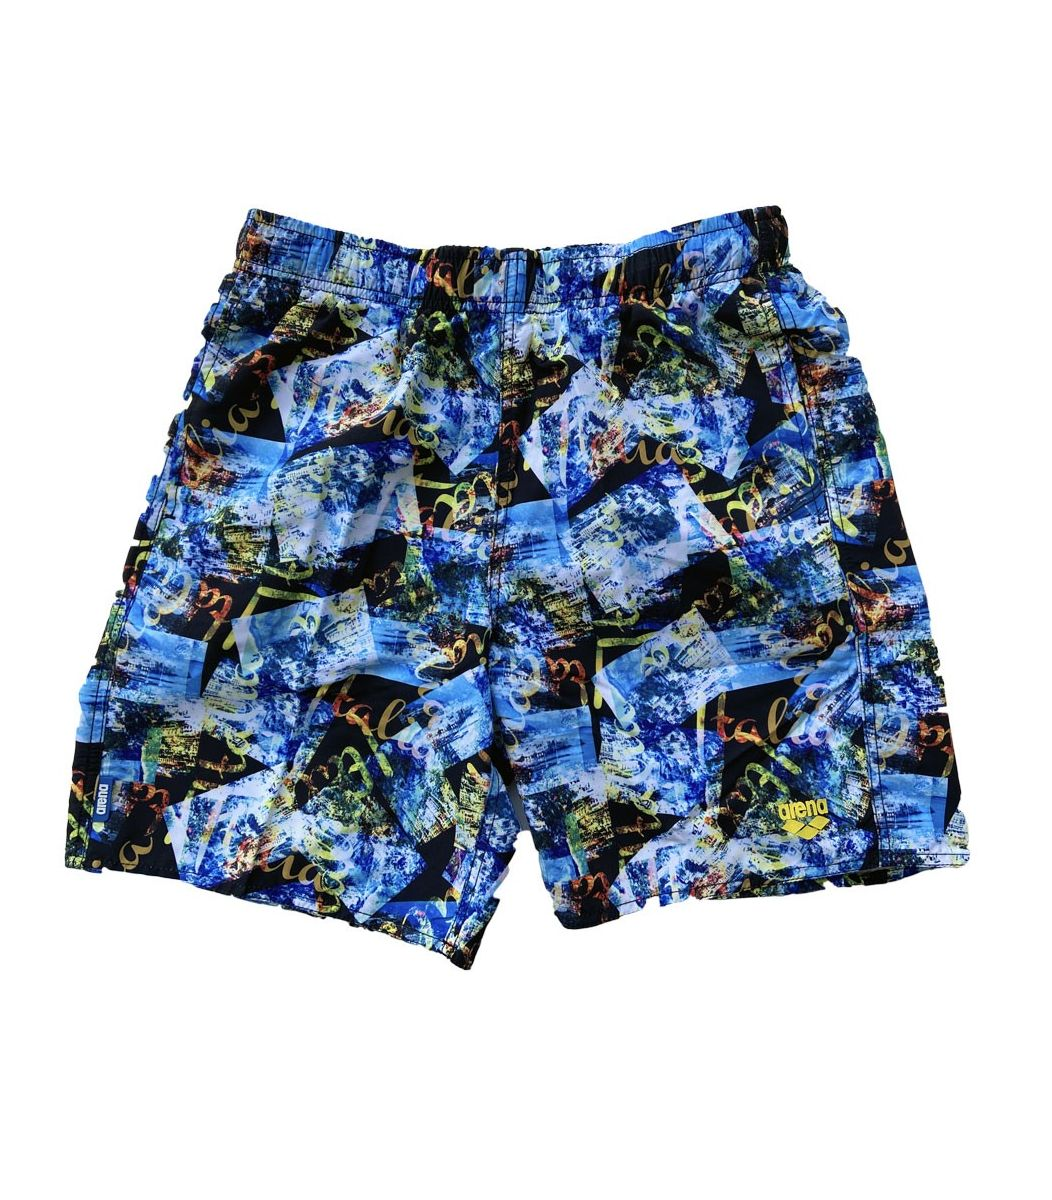 Swimwear Shorts Arena Arena Postcard men's swimshorts 1B18850-1